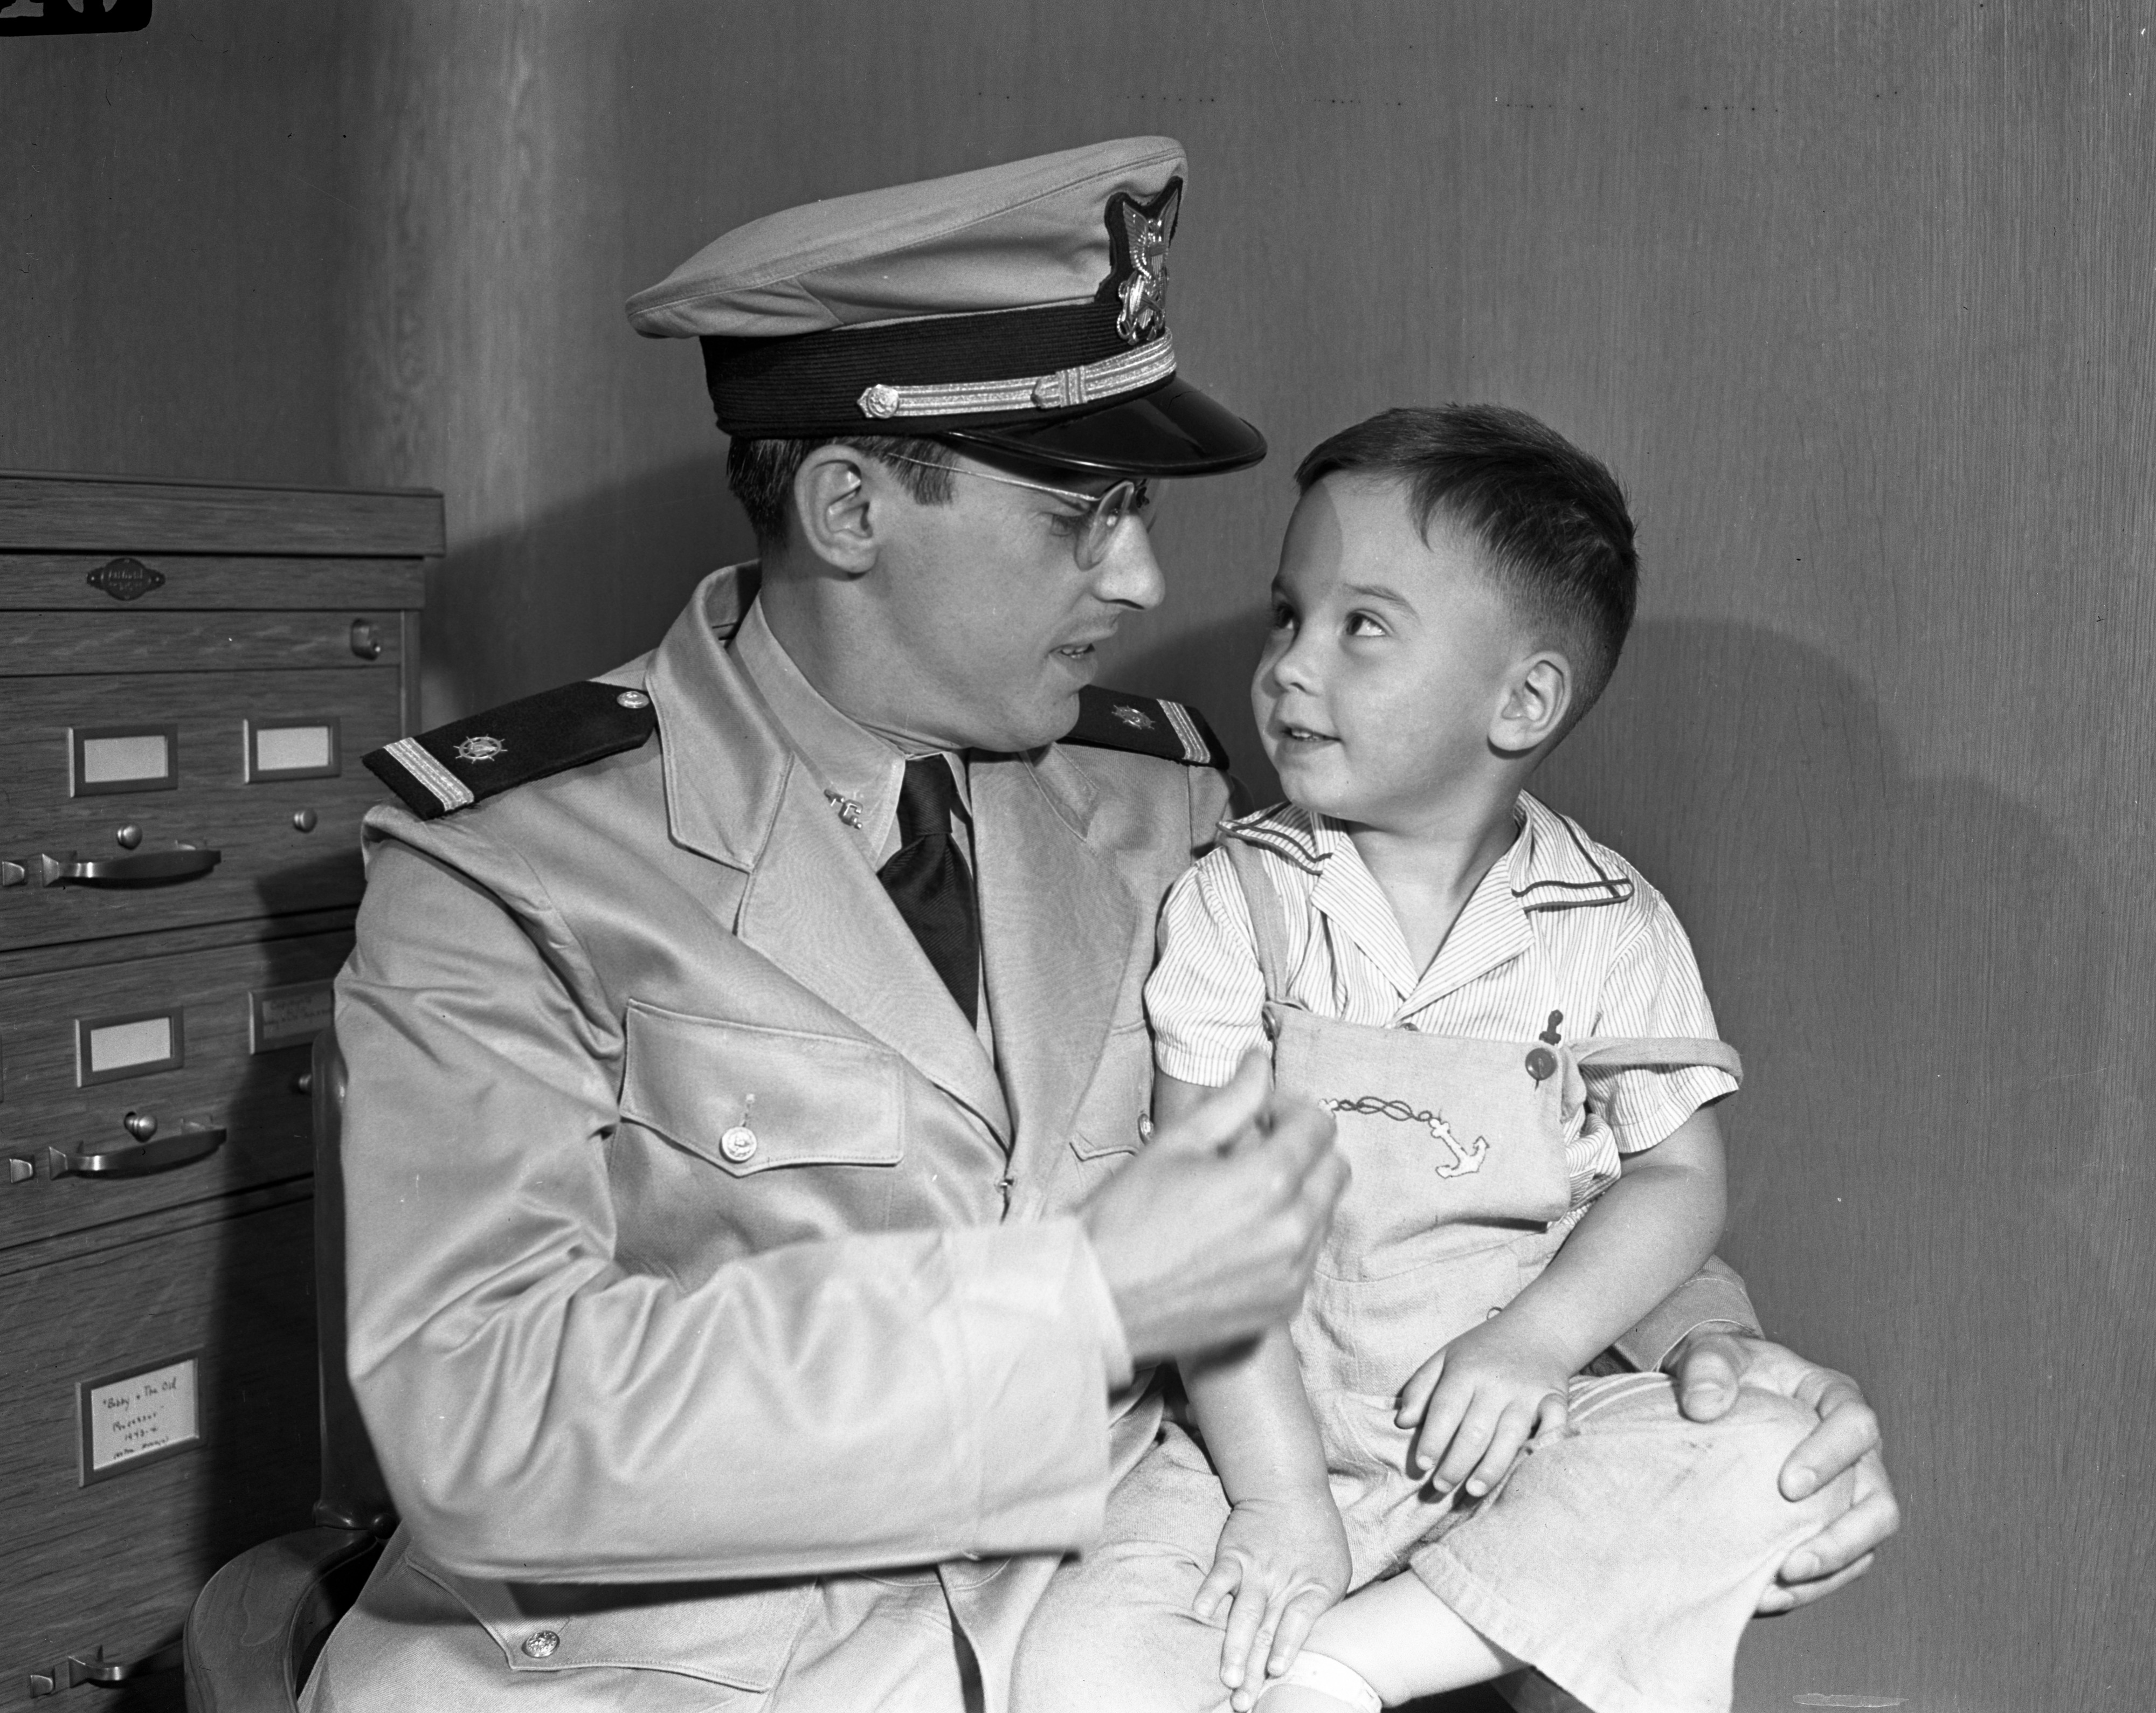 Junior Third Officer Robert F. Wurster, in the Army's Navy, and son Ernie, June 1945 image